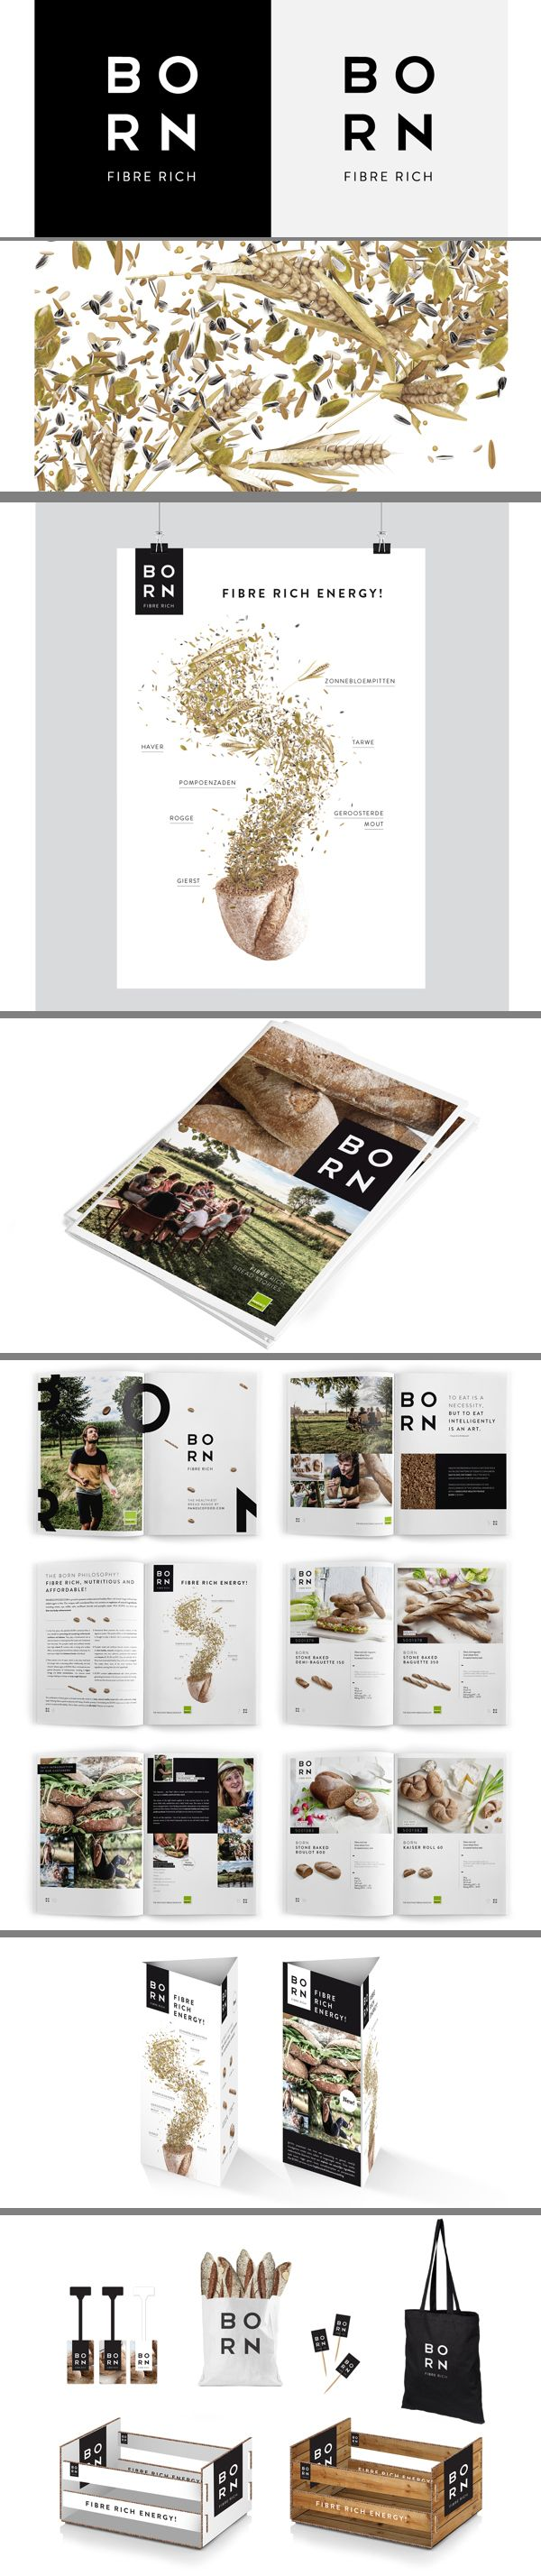 Born food #identity #packaging #branding PD